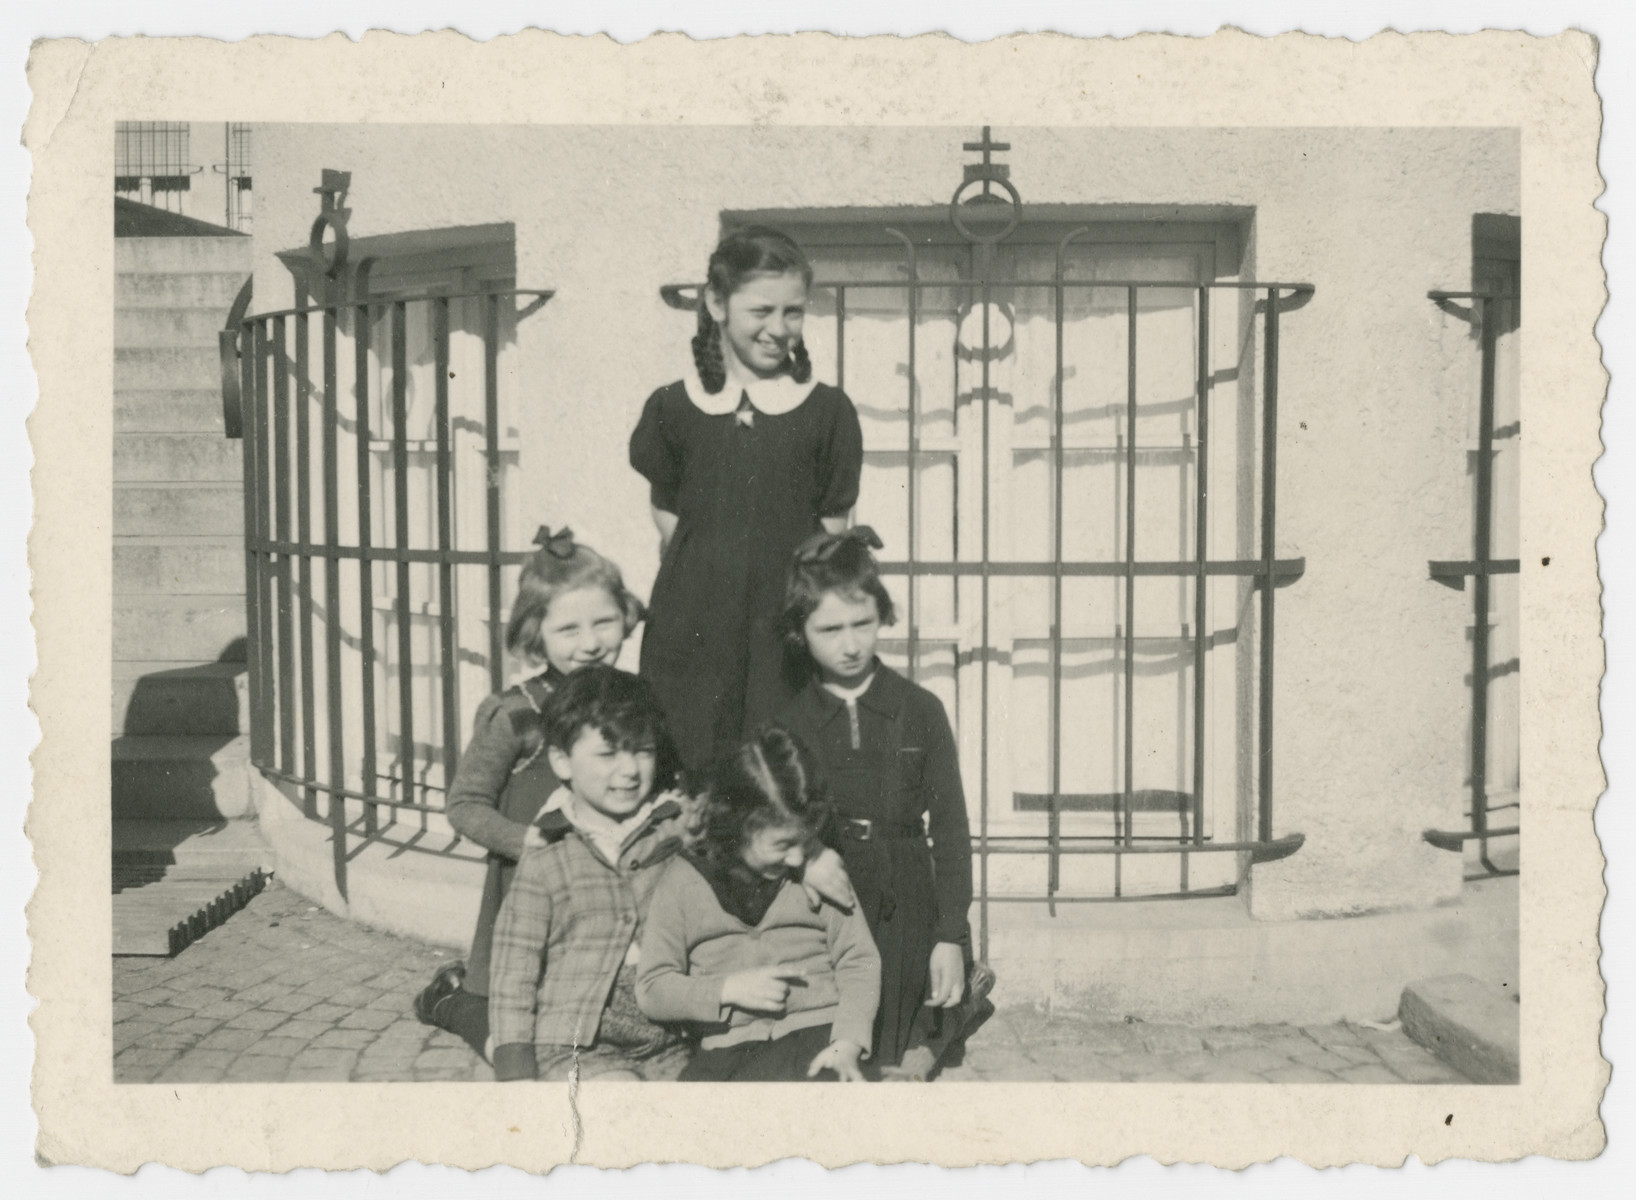 Group portrait of children probably in the Liebenau internment camp, a camp for foreign nationals.  Mina Roth is standing in the back, and her sister Anna is in the front with her head down.